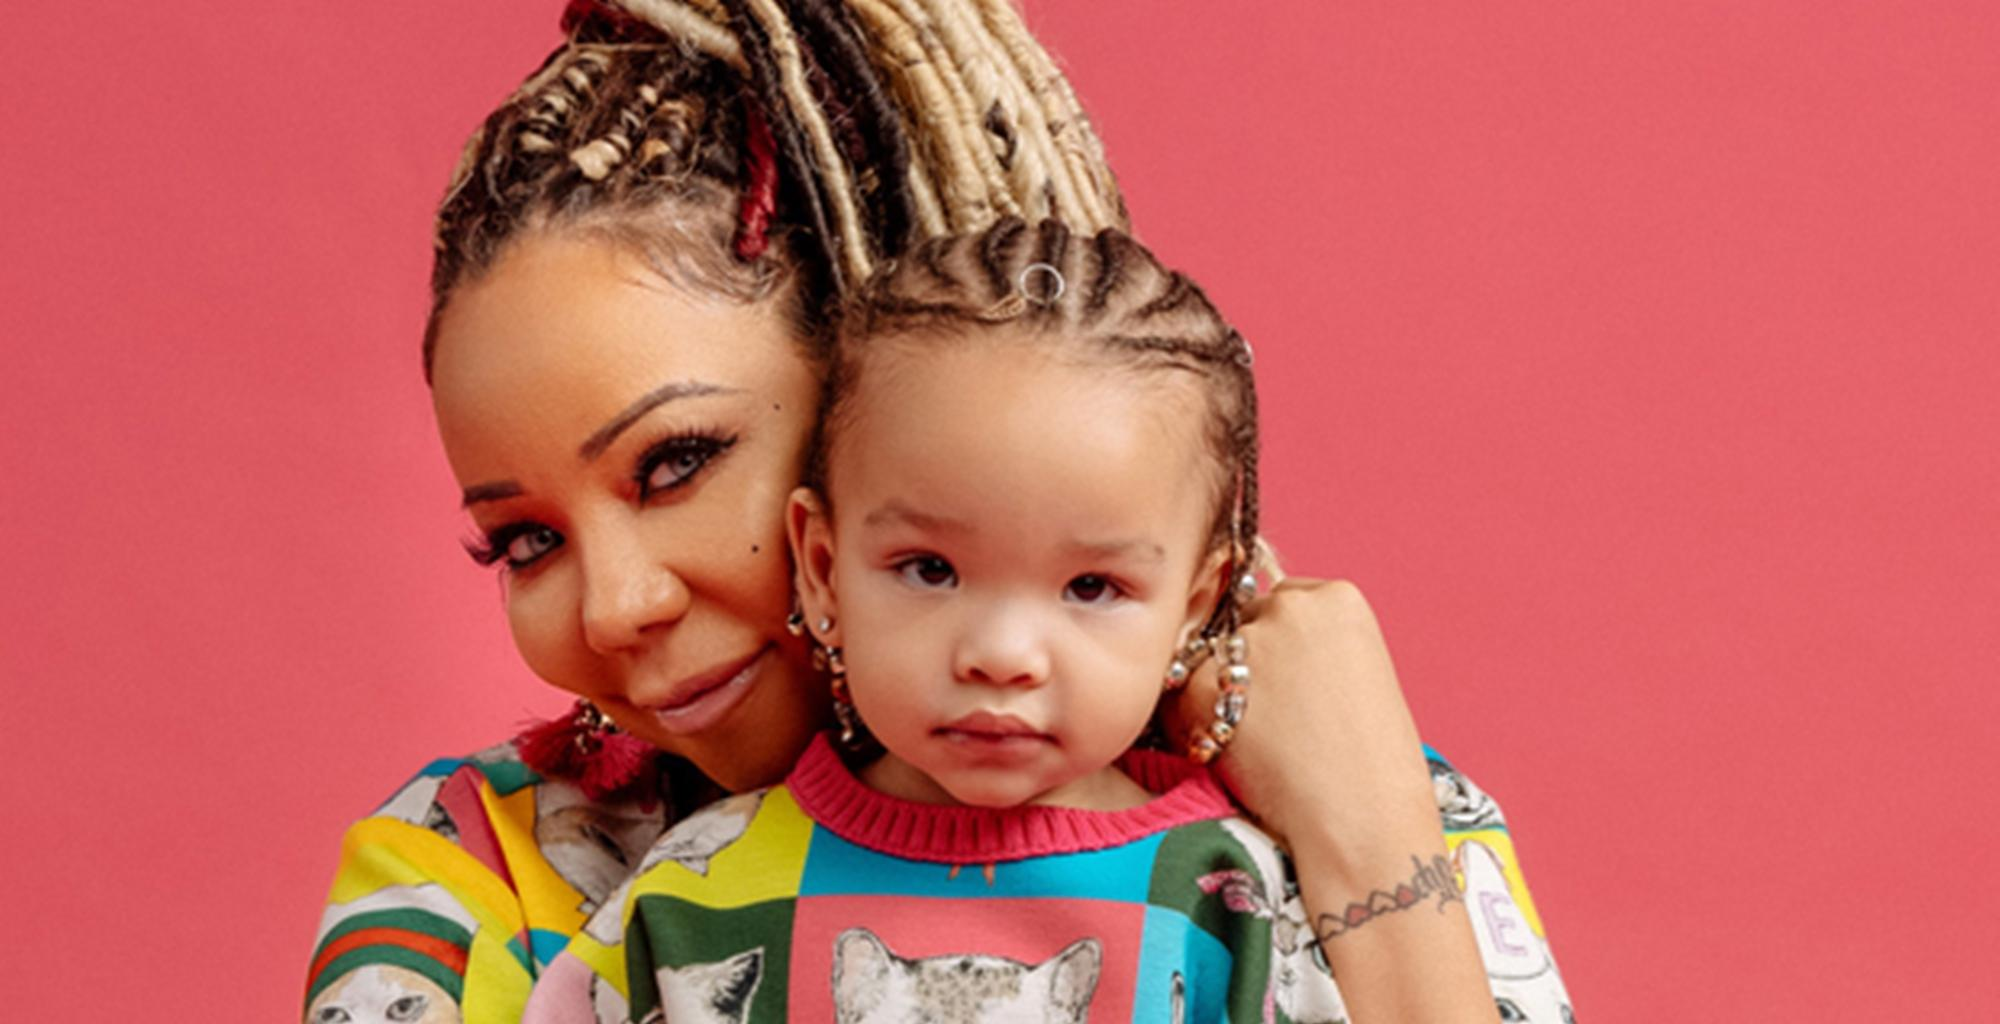 Tiny Harris Tells Fans To Tune Into Heiress Harris' YouTube Channel - Check Out The Video